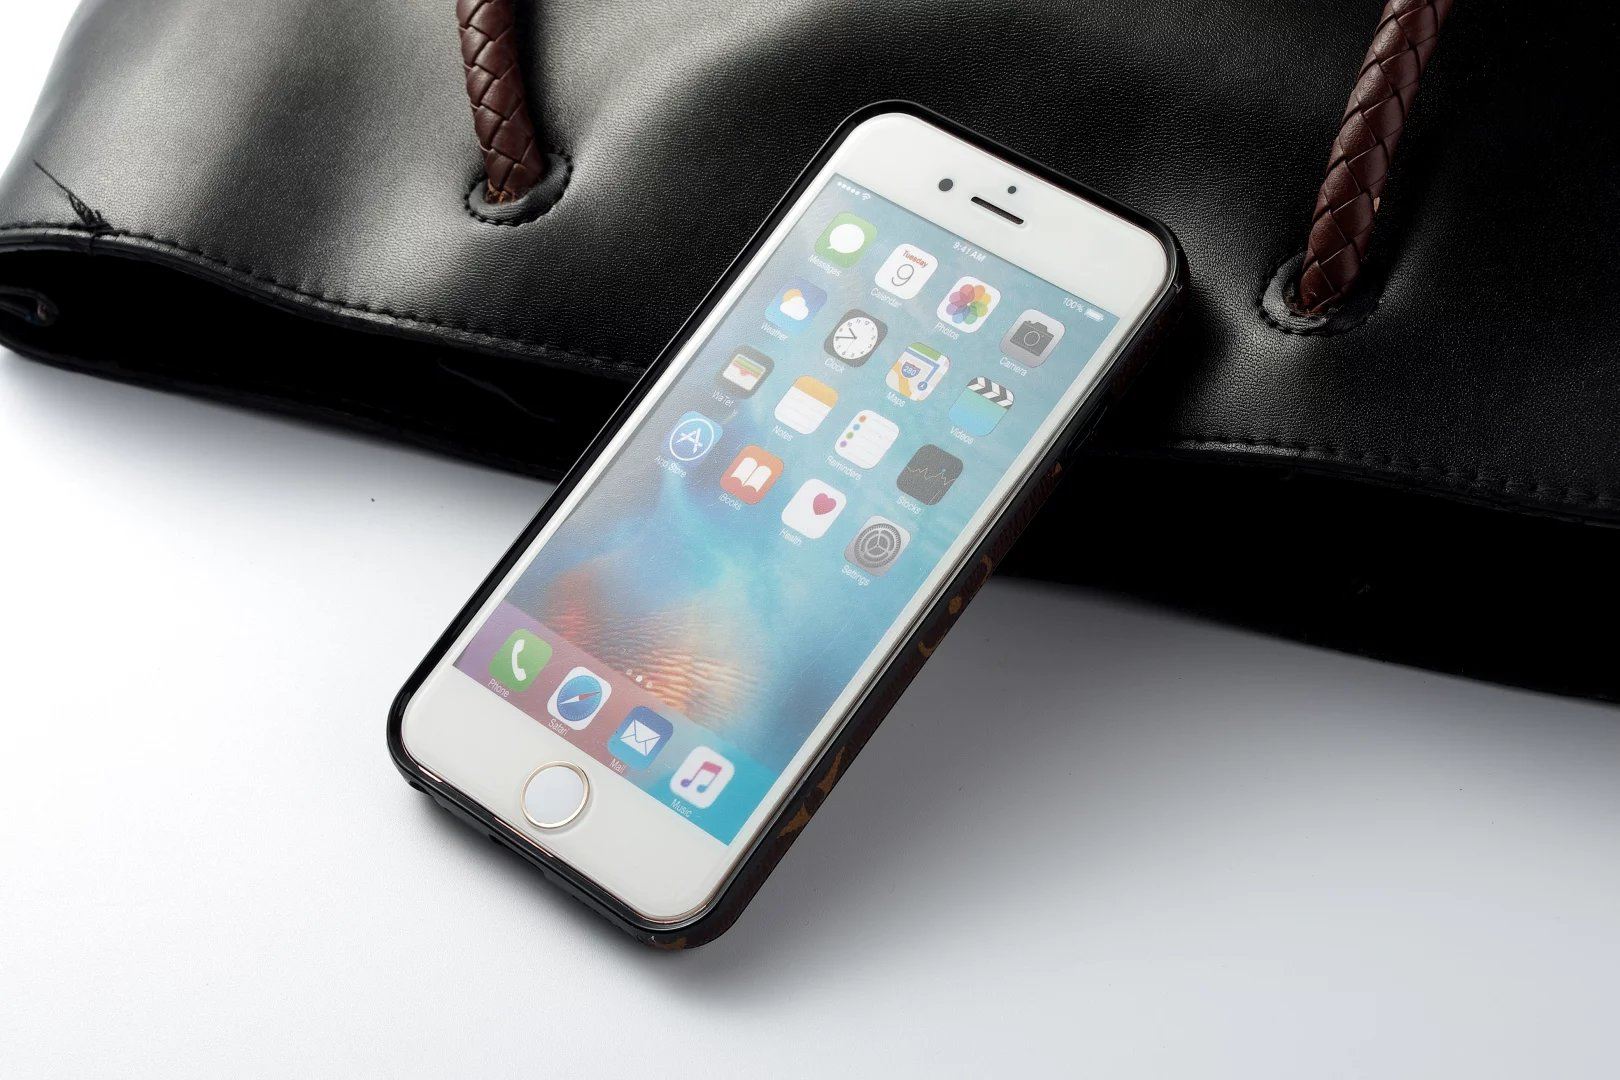 handyhülle iphone beste iphone hülle Louis Vuitton iphone 8 hüllen iphone ca8 design flip ca8 leder iphone 8 handy hülle handy iphone 8 iphone 8 was kann es hülle handy 8lbst gestalten